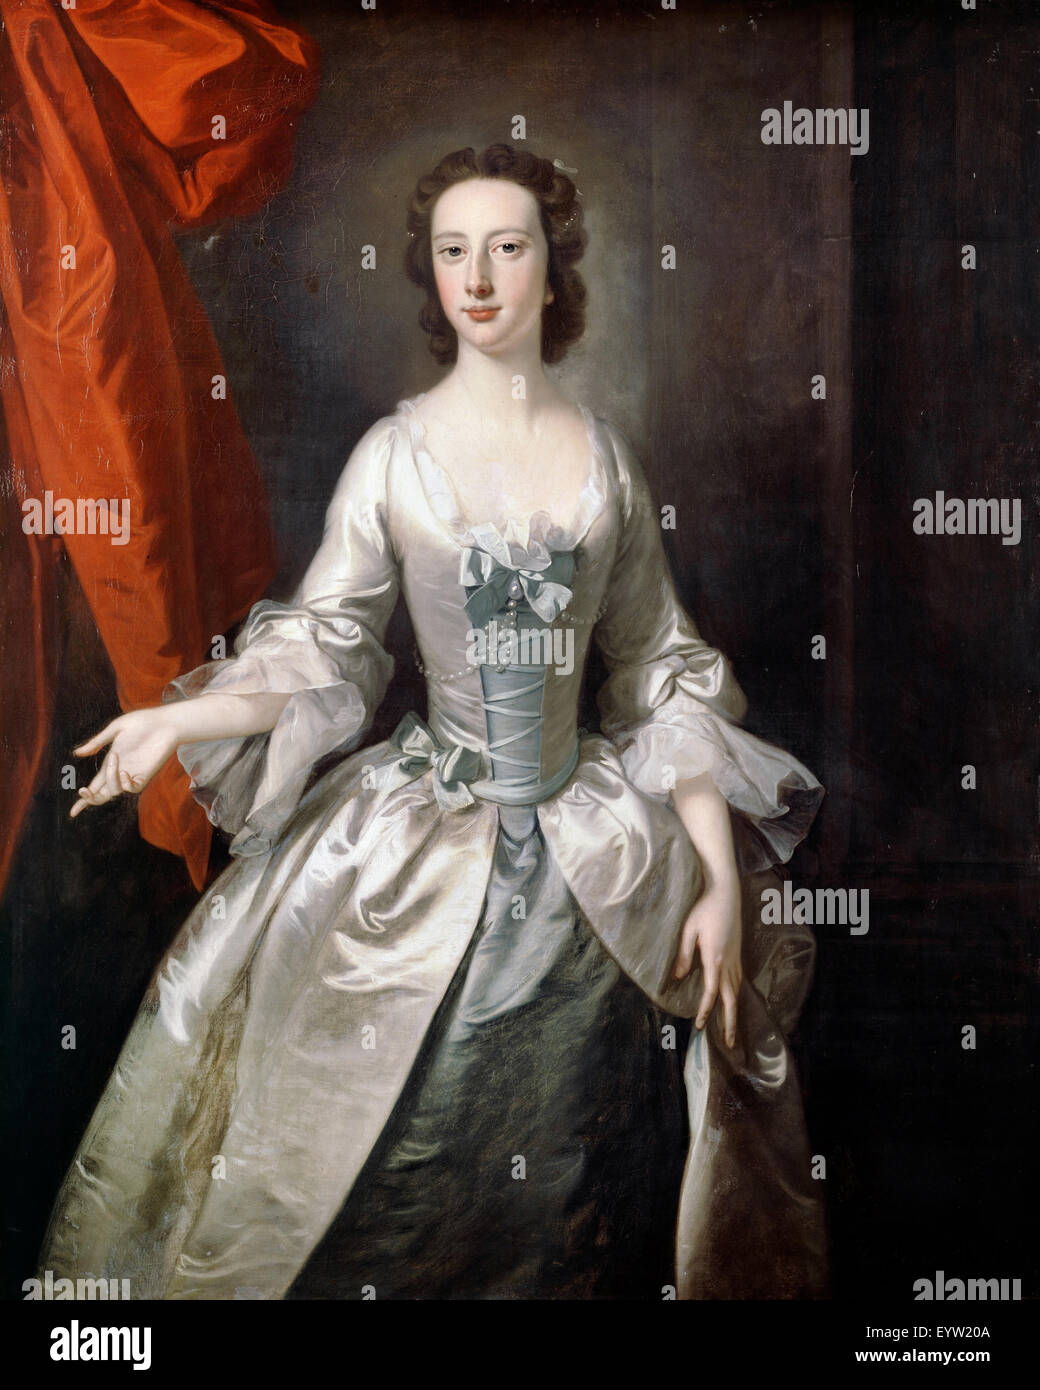 Thomas Hudson, Portrait of a Lady 1750 Oil on canvas. Dulwich Picture Gallery, London, England. - Stock Image